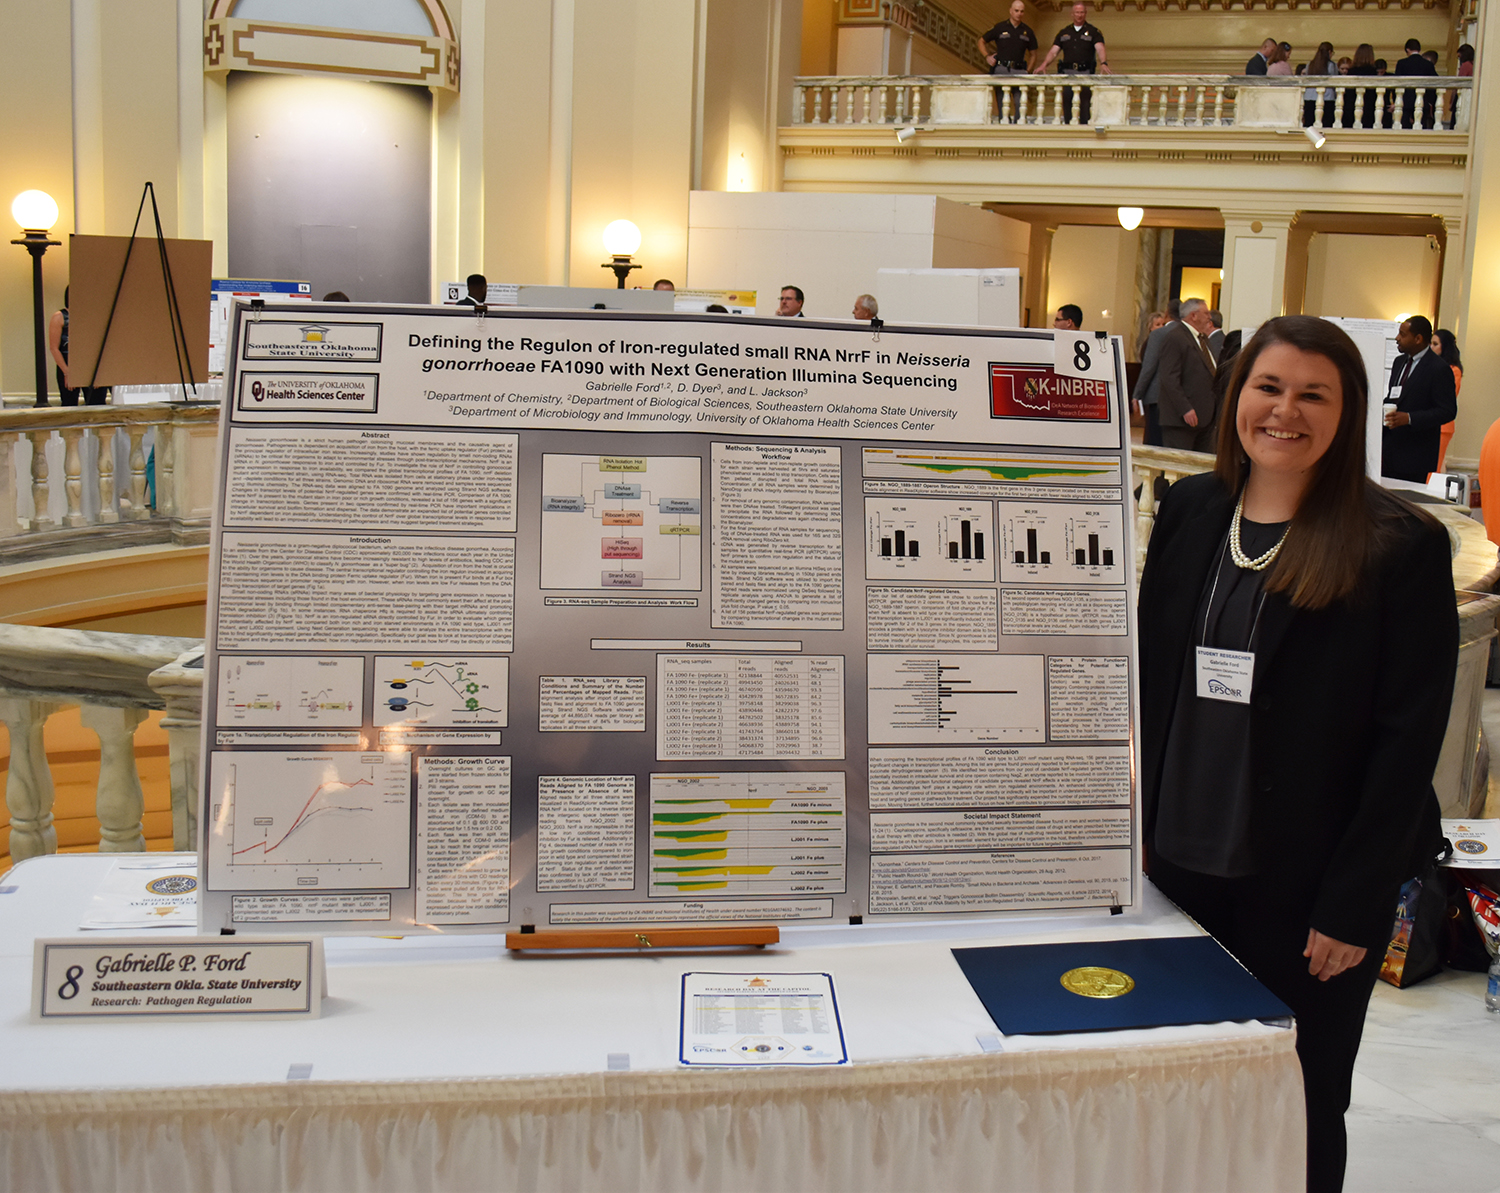 Gabrielle Ford represents Southeastern at Research Day